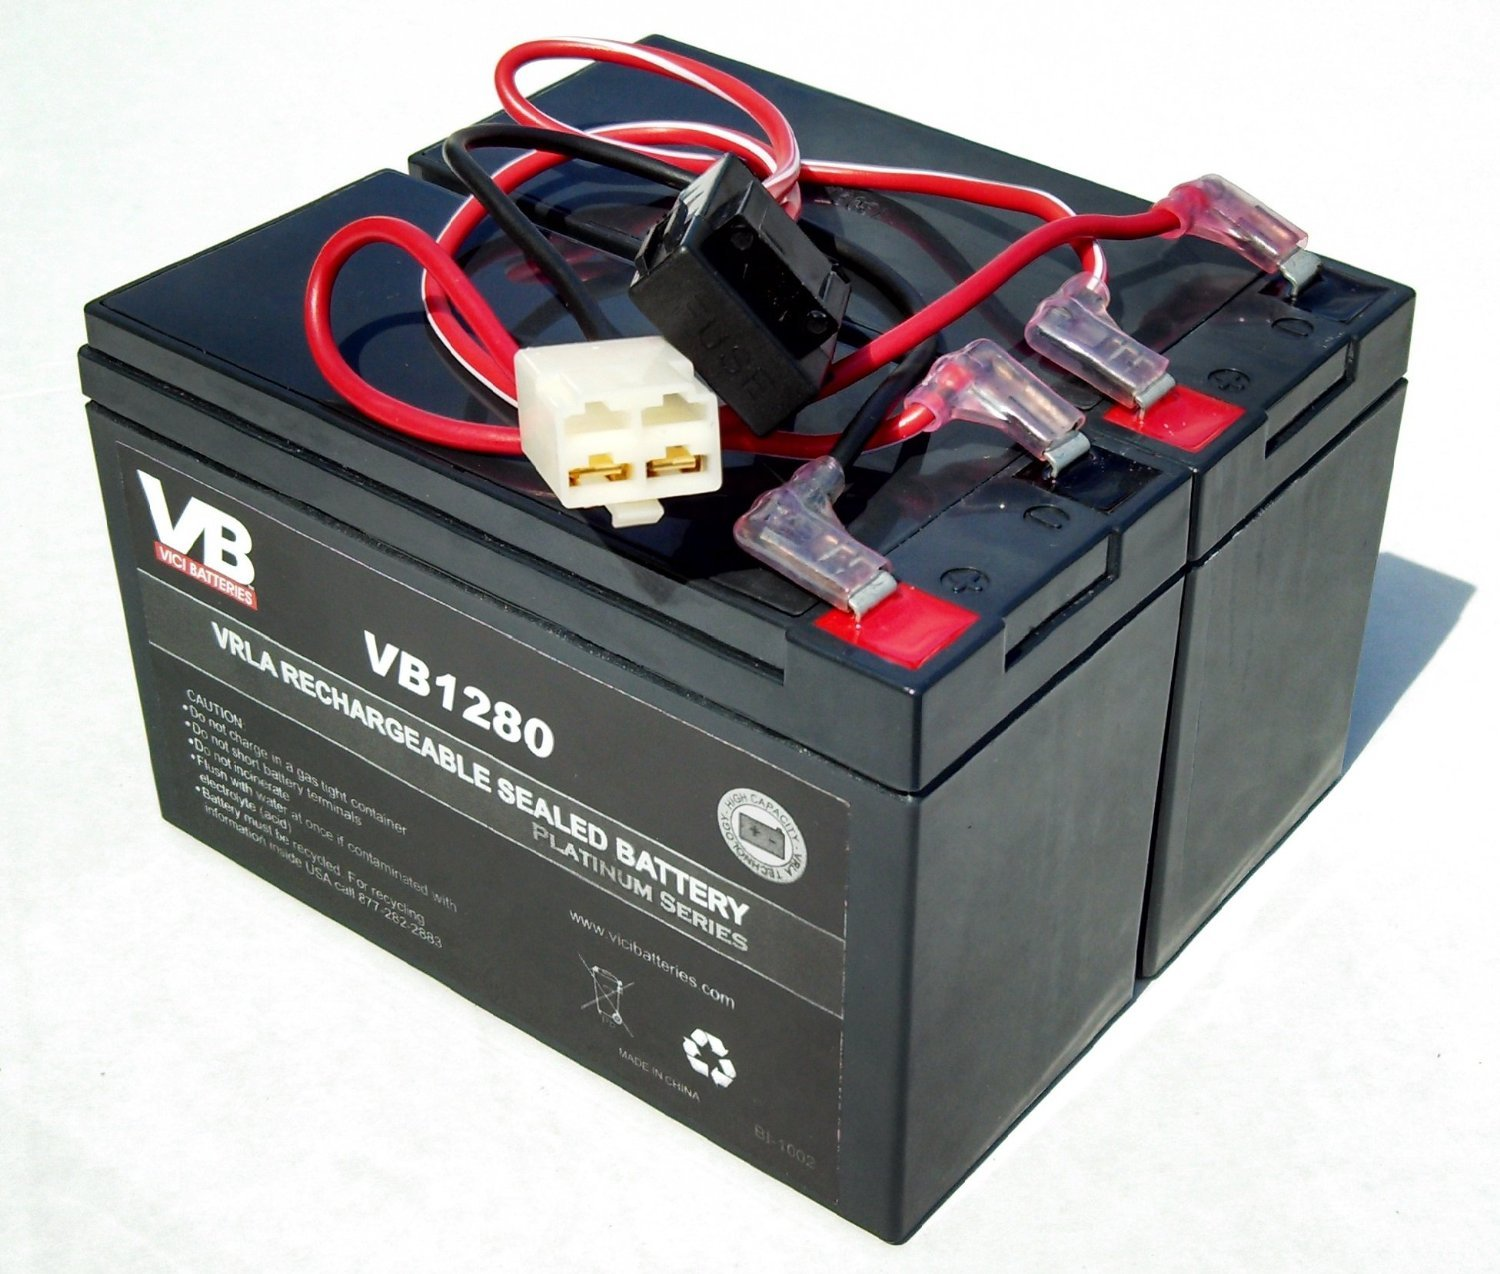 Razor 12 Volt 7Ah Electric Scooter Batteries High Performance - Set of 2 Includes New Wiring Harness by Razor replacement - VICI